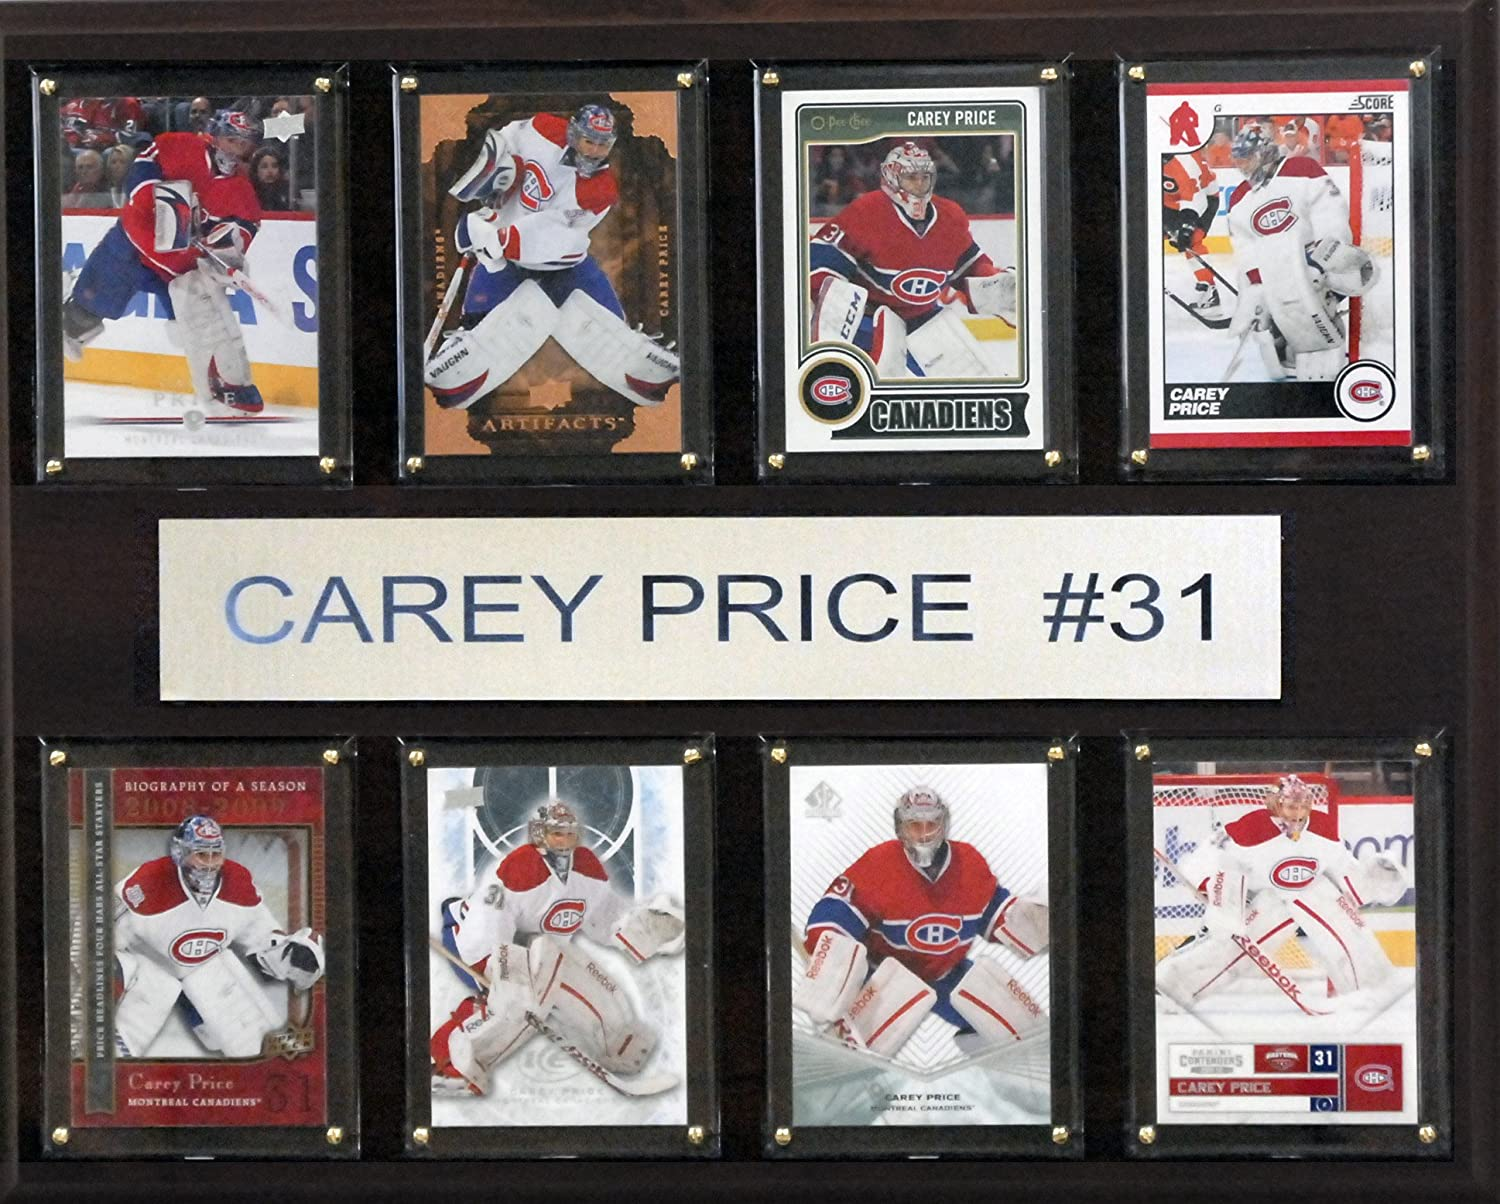 NHL Montreal Canadiens Carey Price gefaltet Plaque, 12 x 15 Zoll